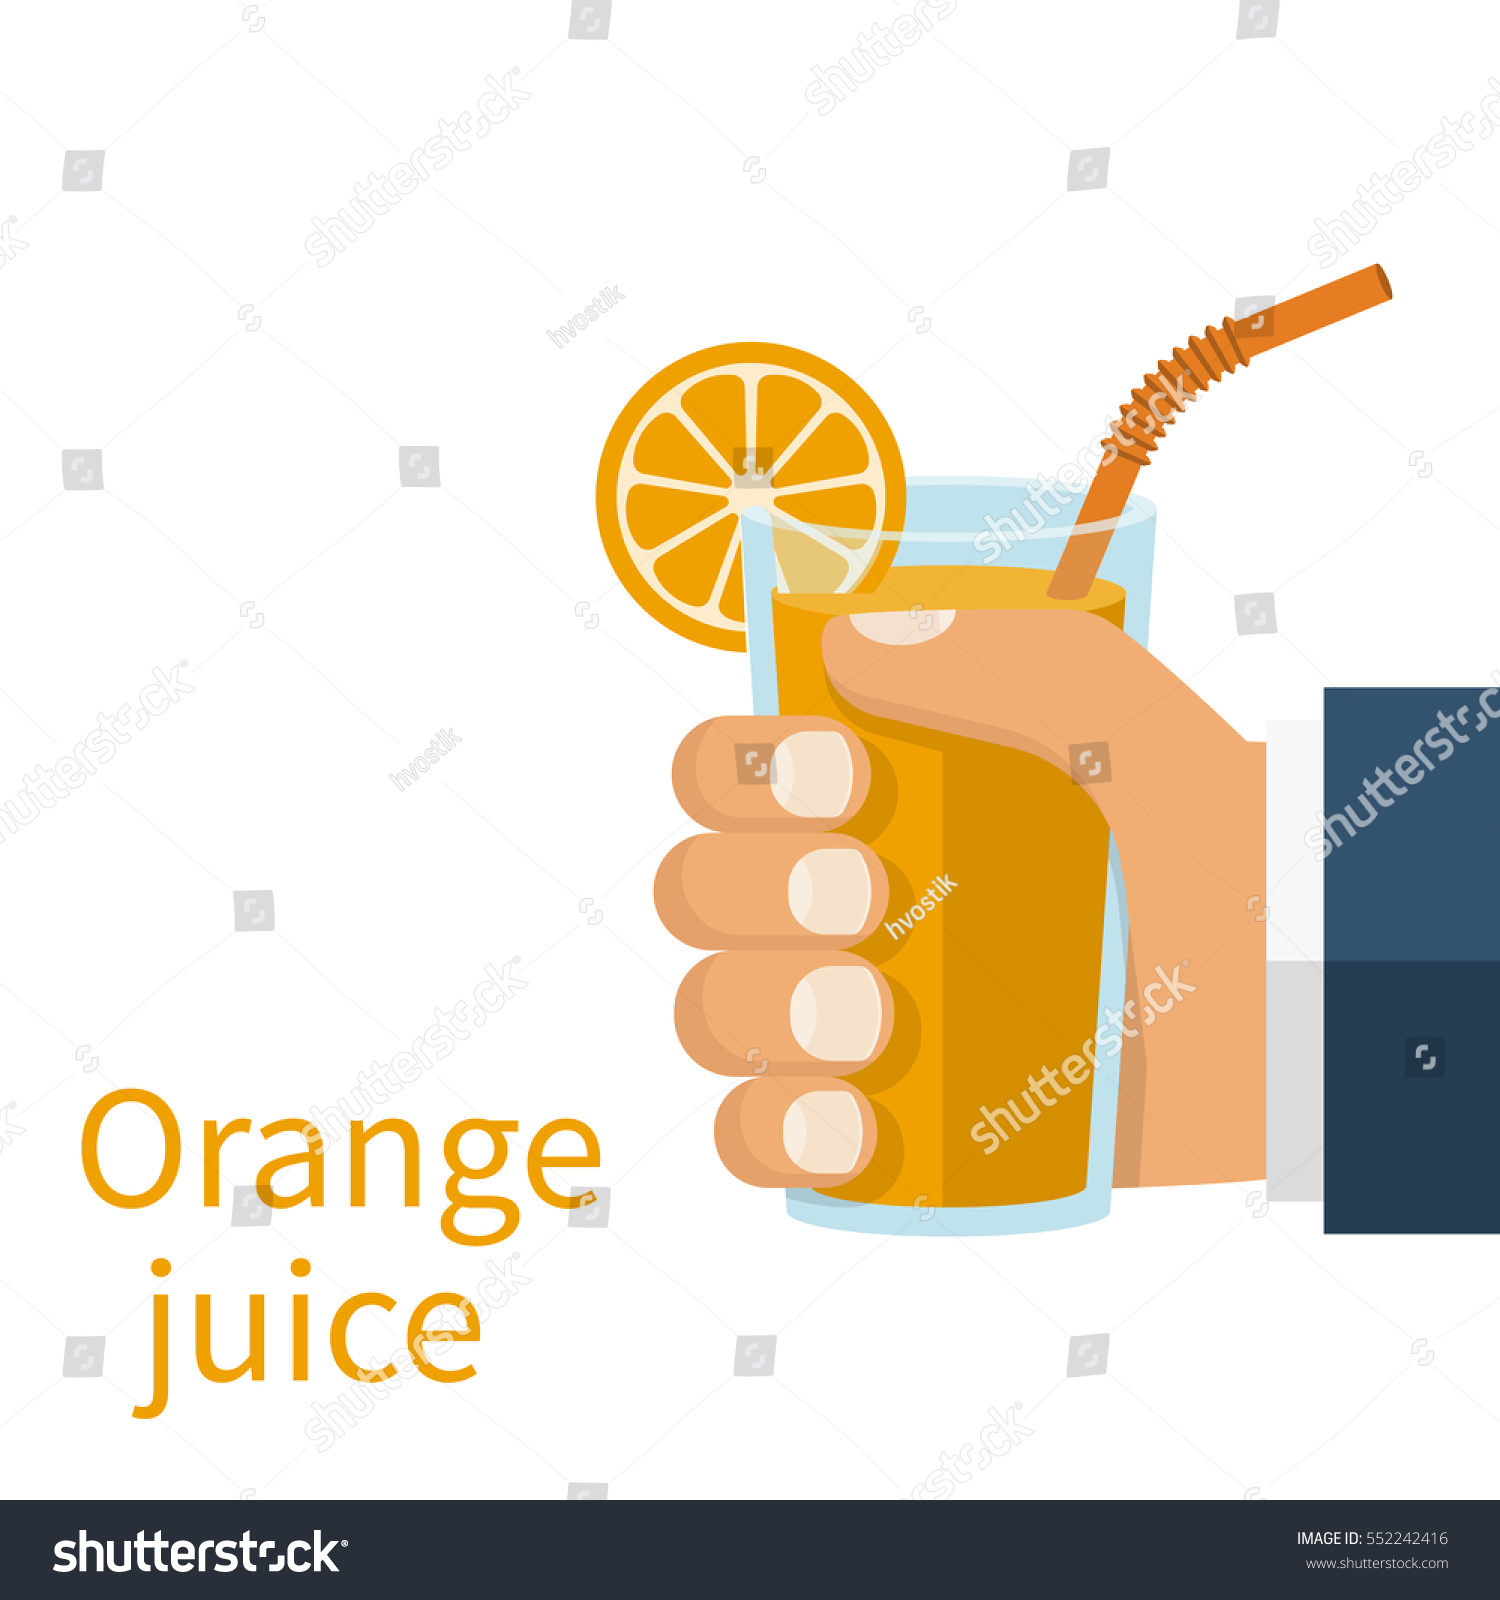 Glass juice cups design - Orange Juice In A Glass Cup Hold In Hand Vector Illustration Flat Design Isolated